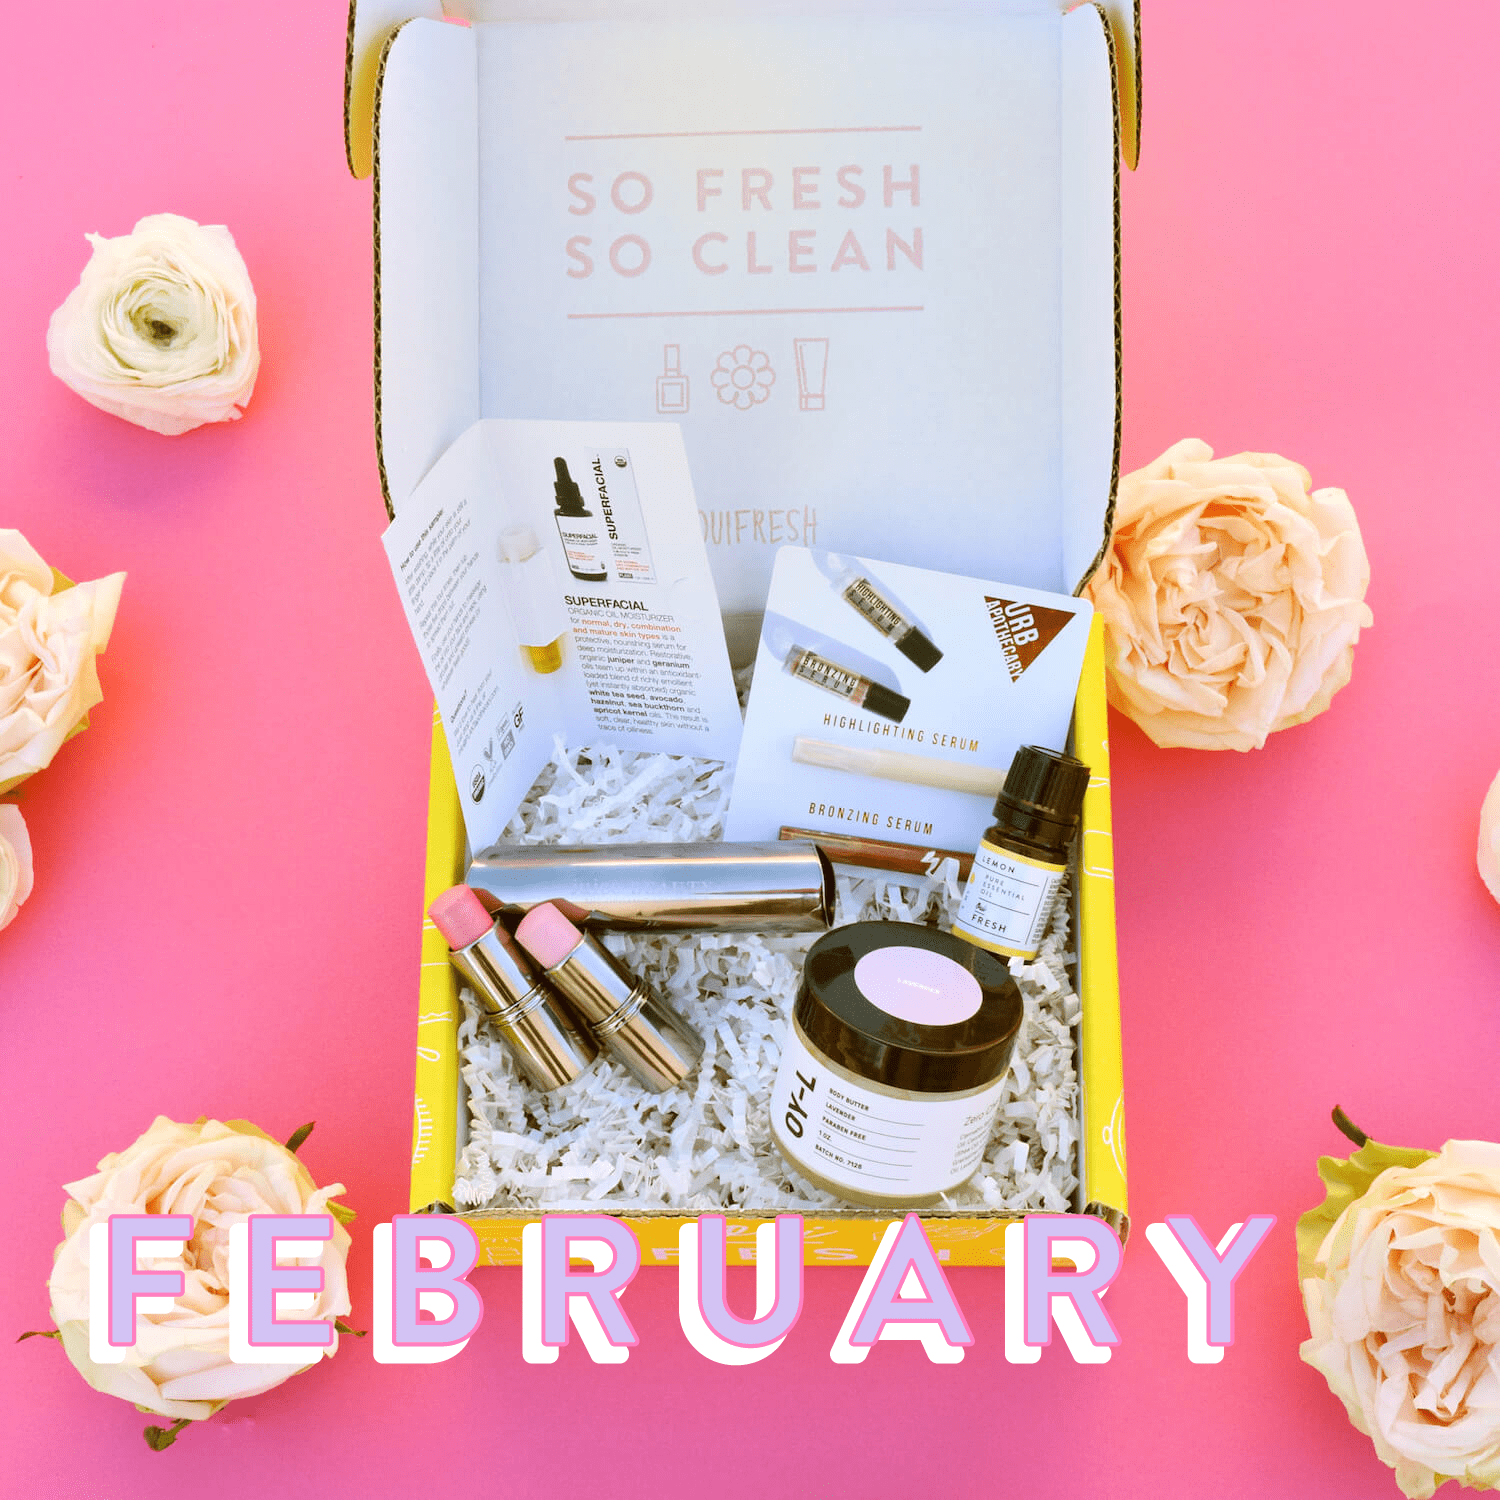 Oui Fresh February 2018 Full Spoilers!